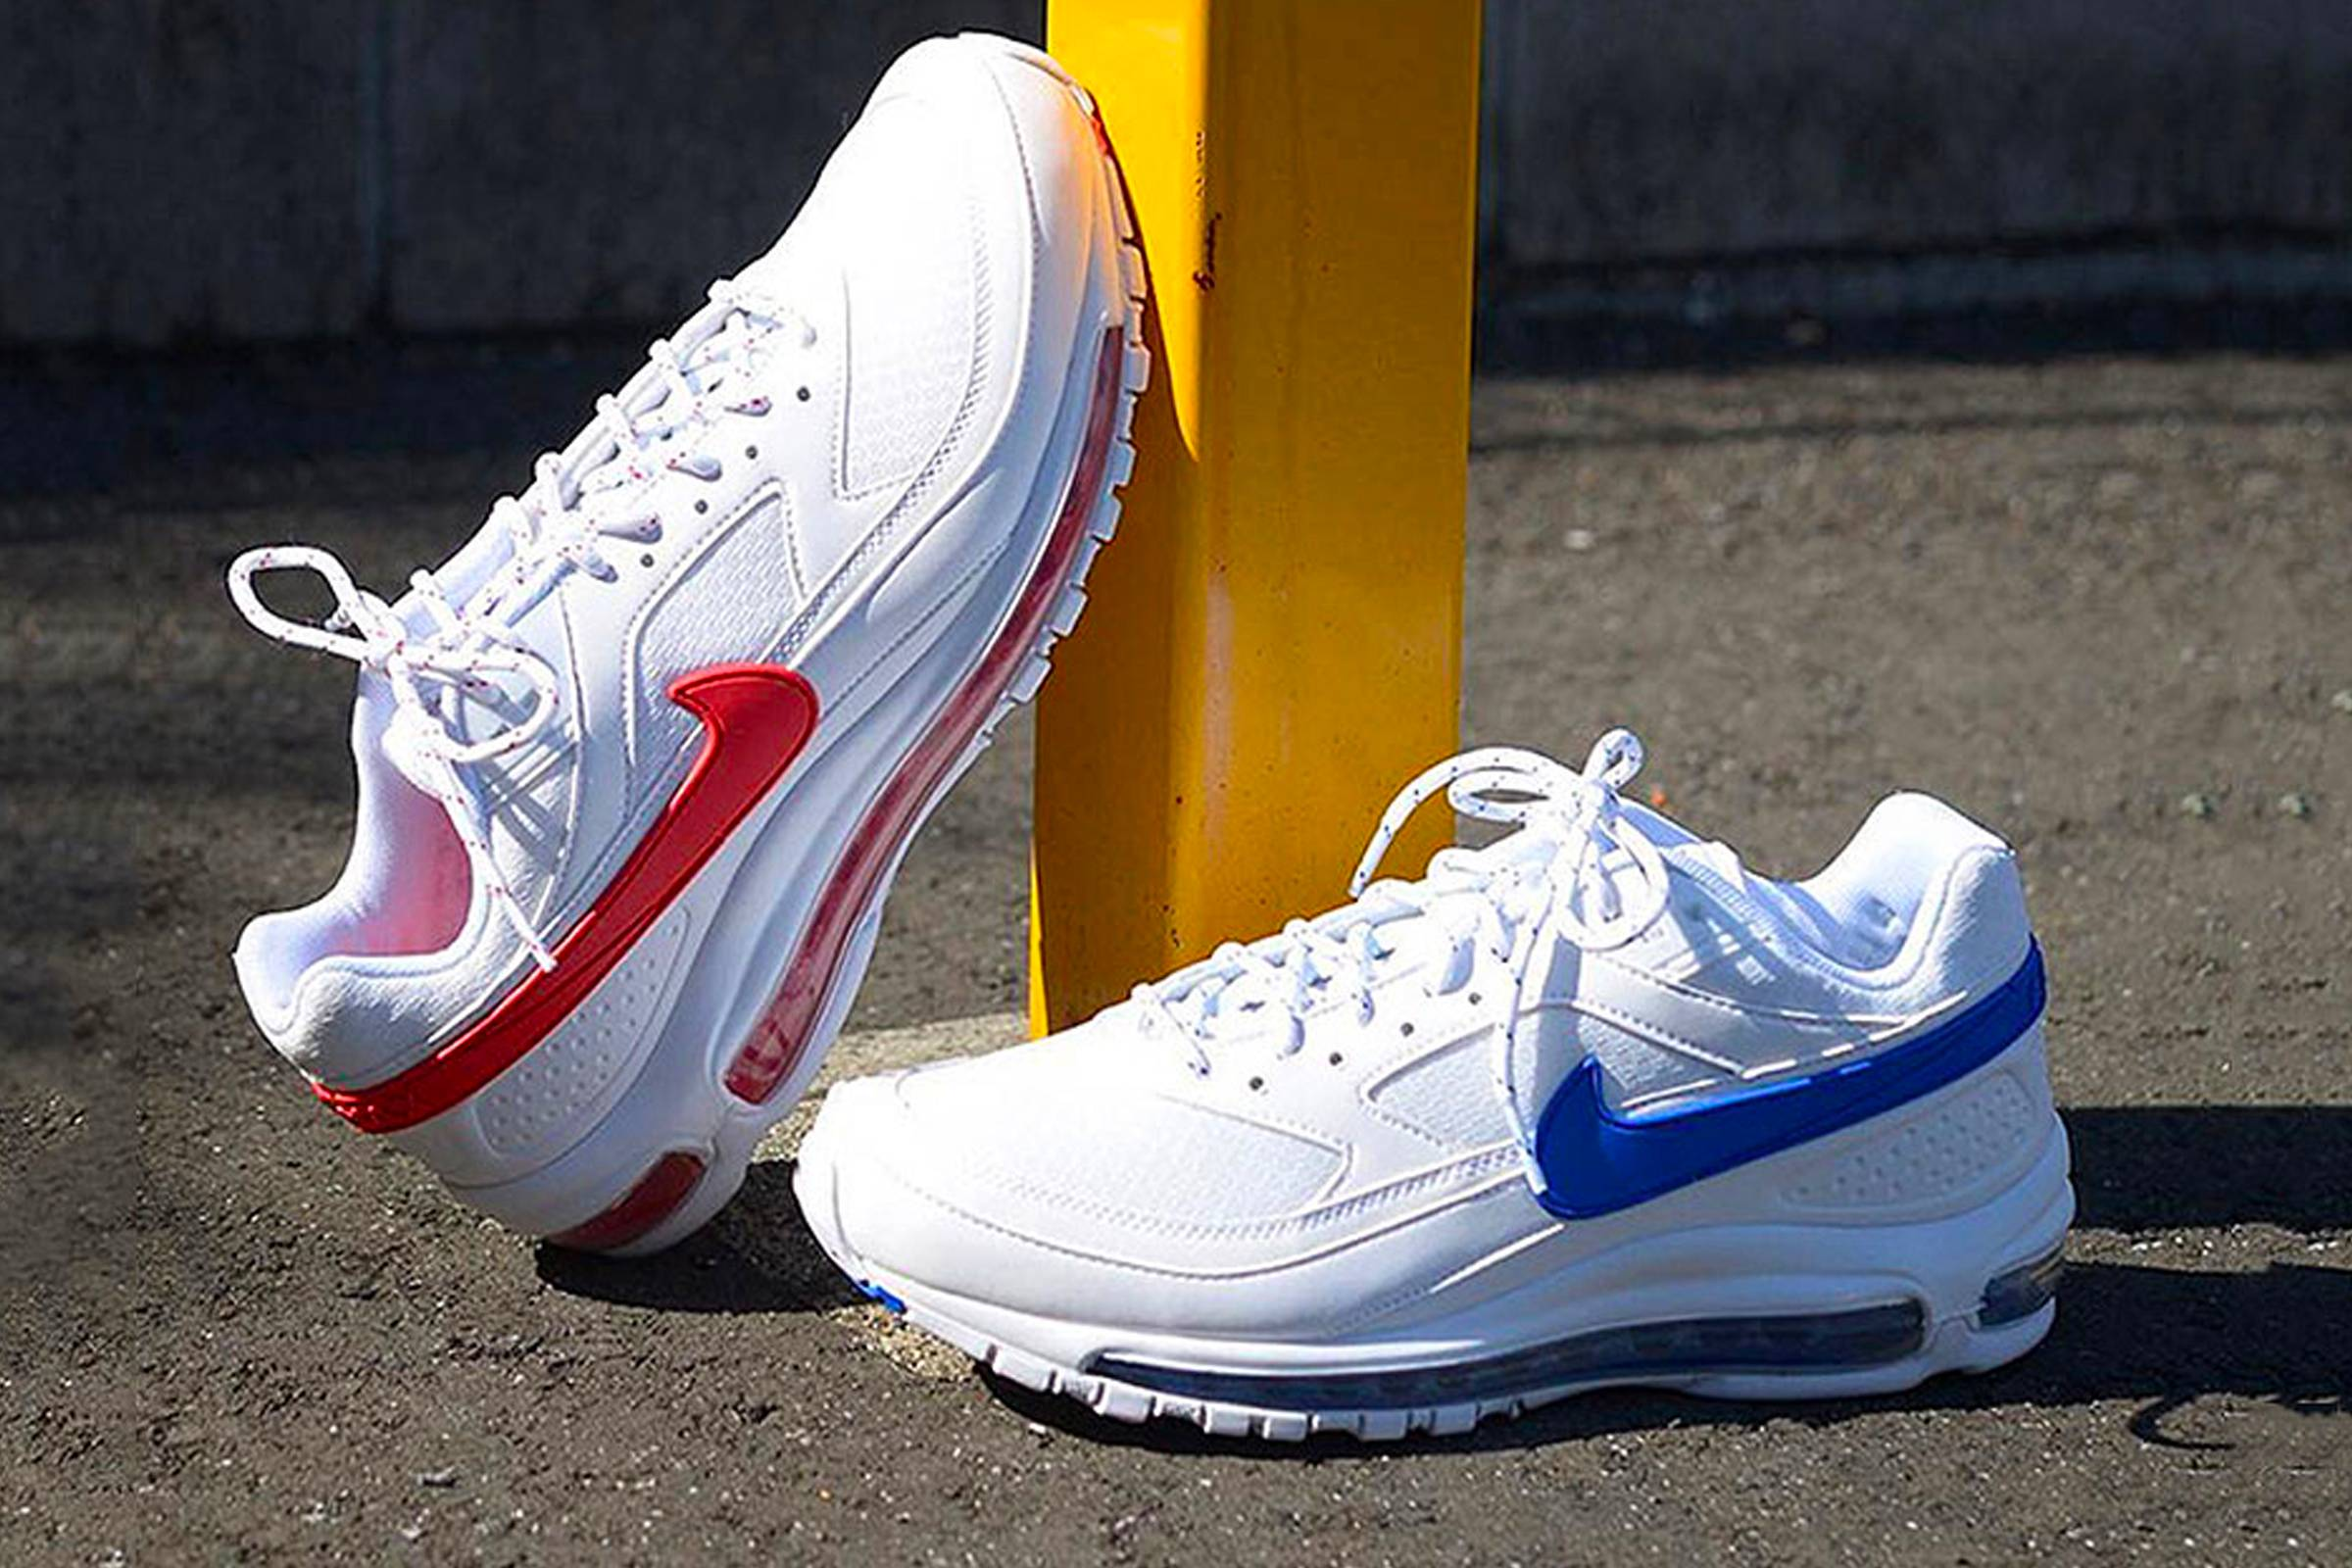 bb719c57235 Skepta s Latest Nike Collaboration Has a Release Date - Air Max 97 ...